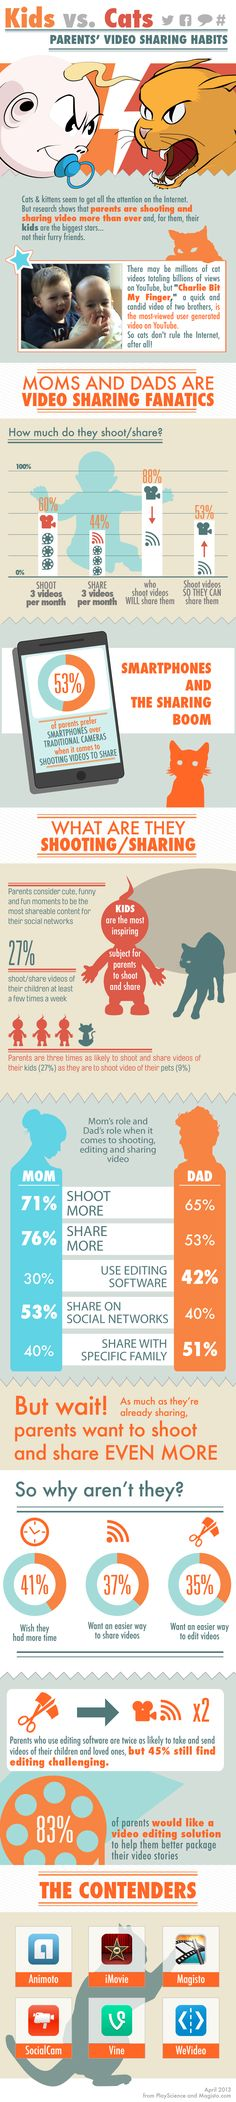 Kids vs. Cats: Parents' Video Sharing Habits